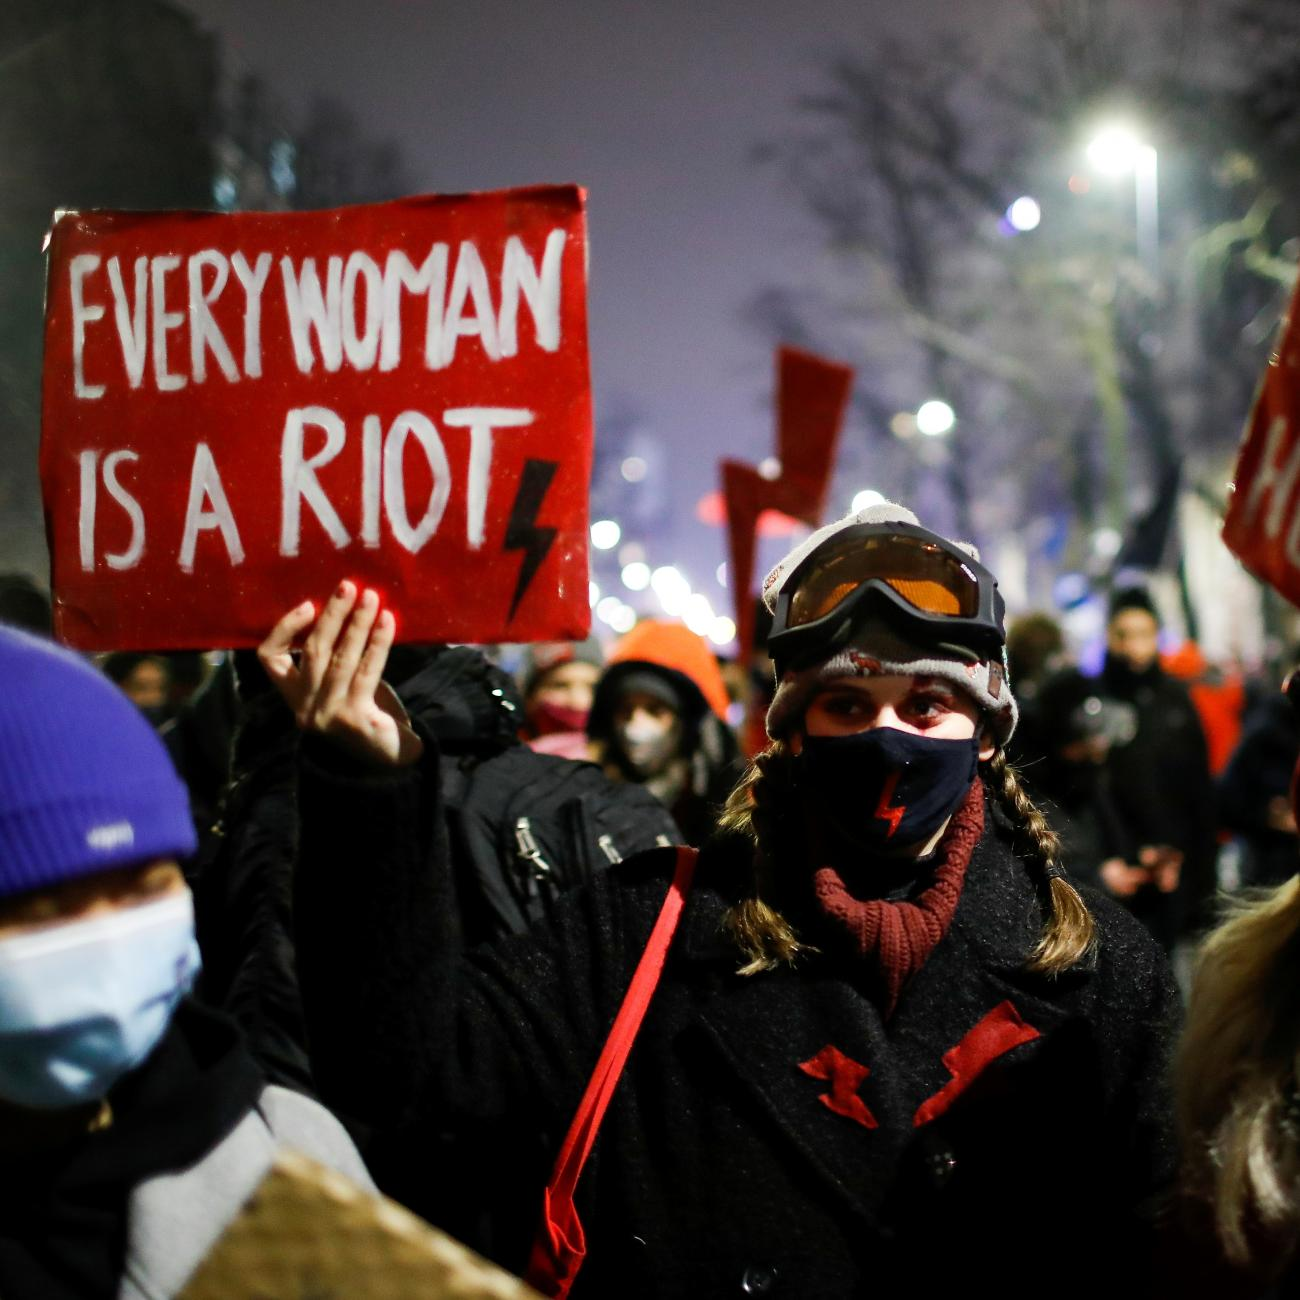 A demonstrator holds a placard during a protest against the verdict restricting abortion rights in Warsaw, Poland, January 28, 2021.